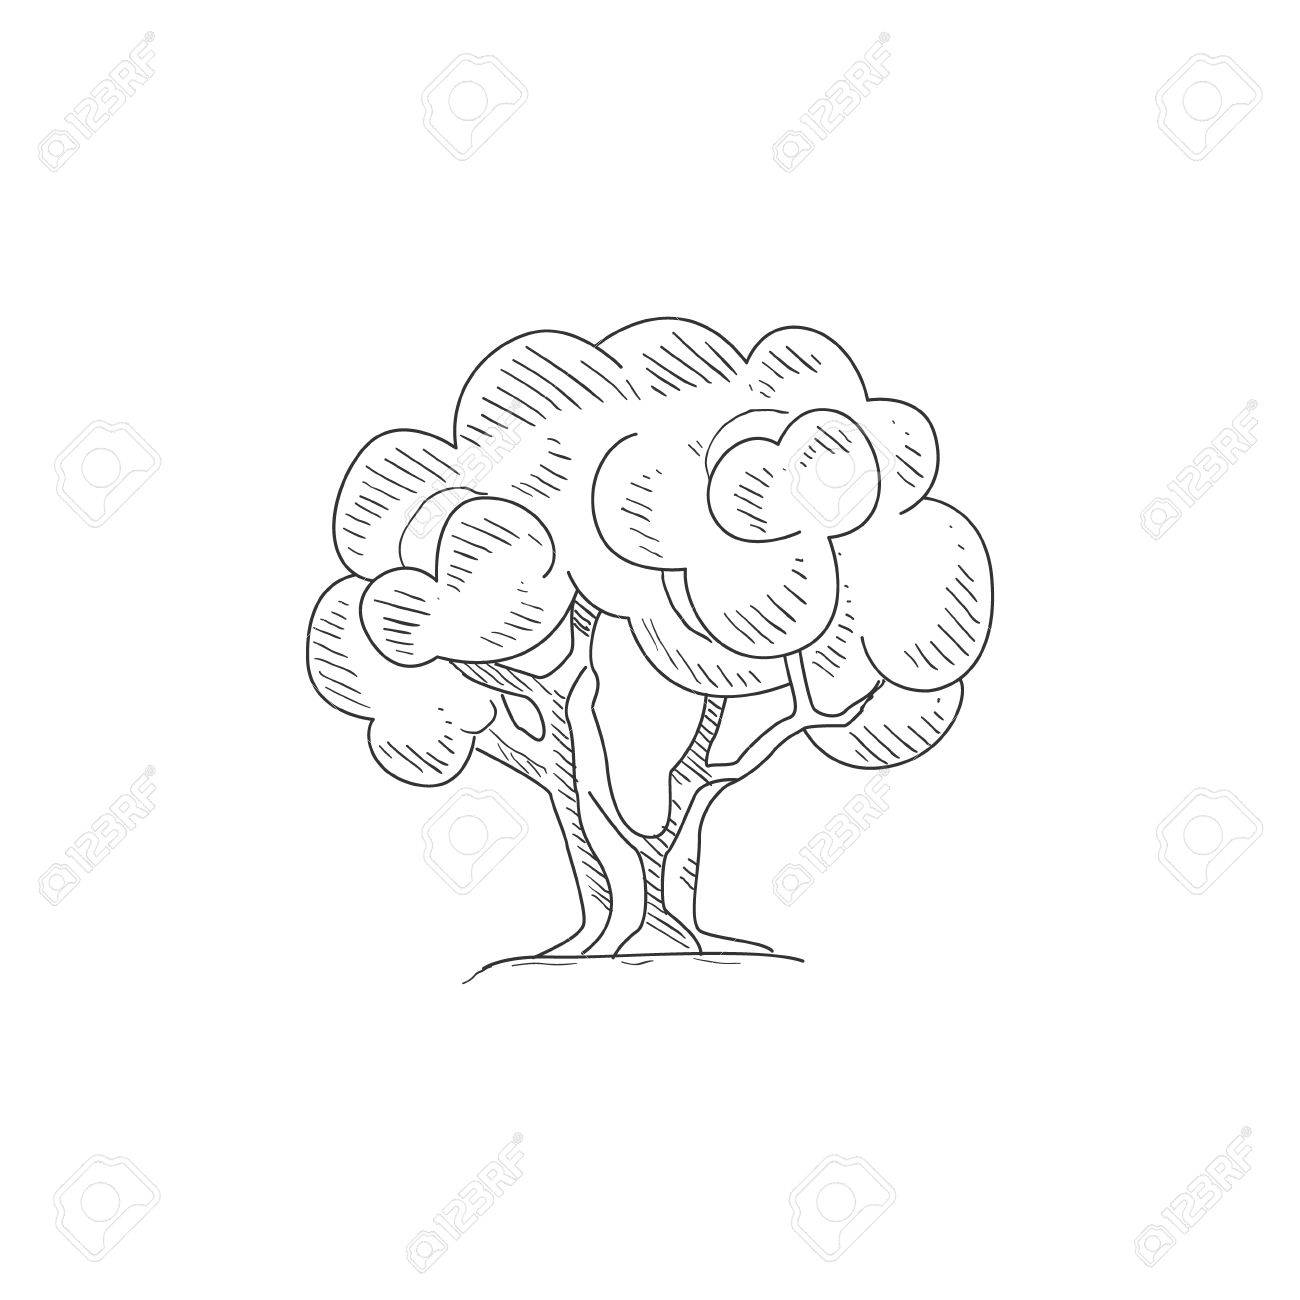 Olive Tree Hand Drawn Realistic Detailed Sketch In Classy Simple Royalty Free Cliparts Vectors And Stock Illustration Image 61245939